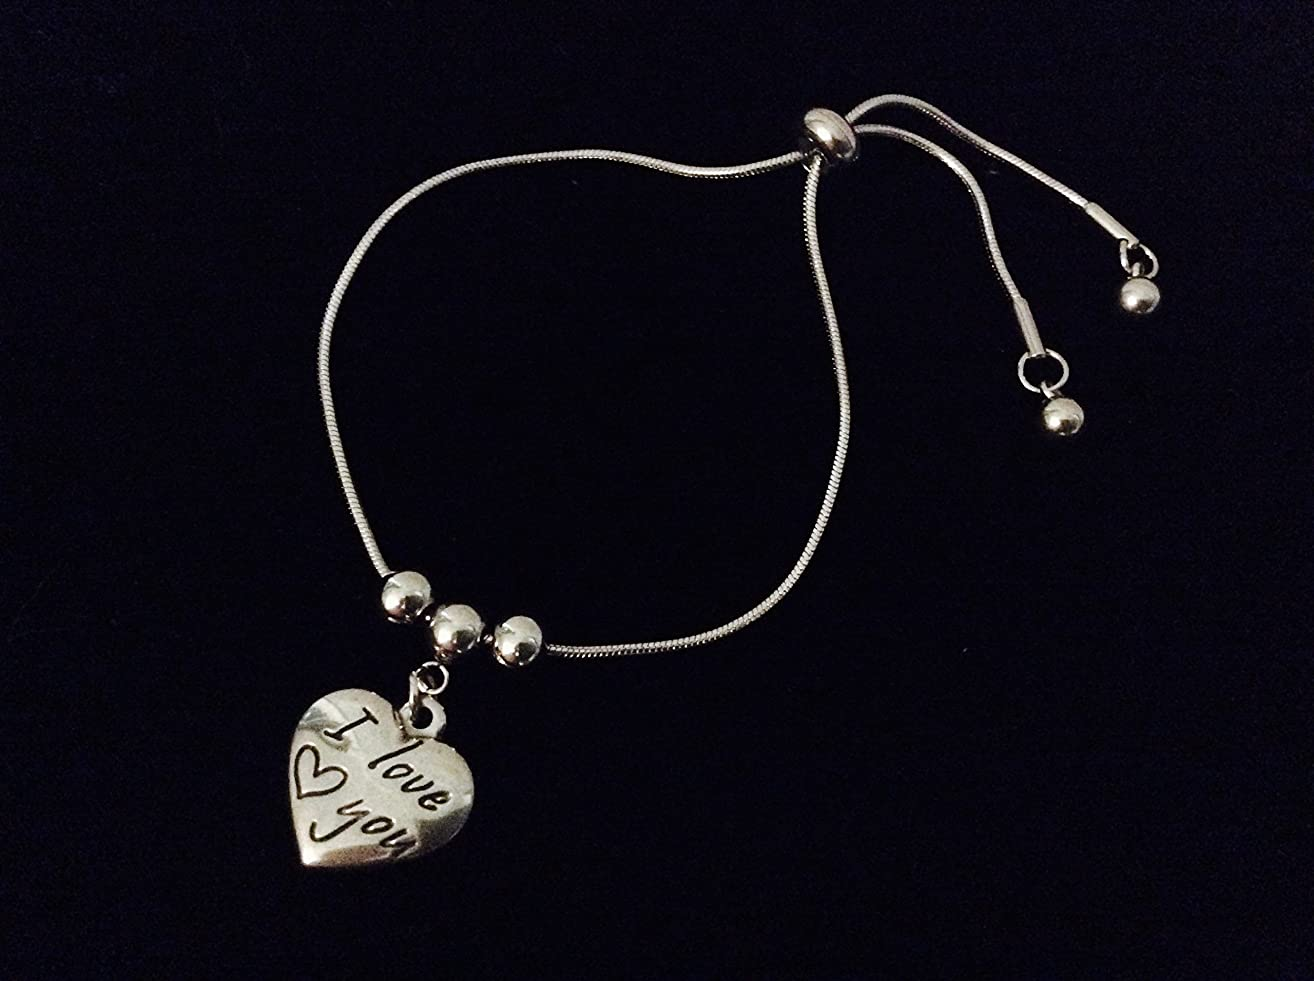 I love You Adjustable Bolo Bracelet Stainless Steel Adjustable Bracelet Slider Charm Bracelet Gift One Size Fits All